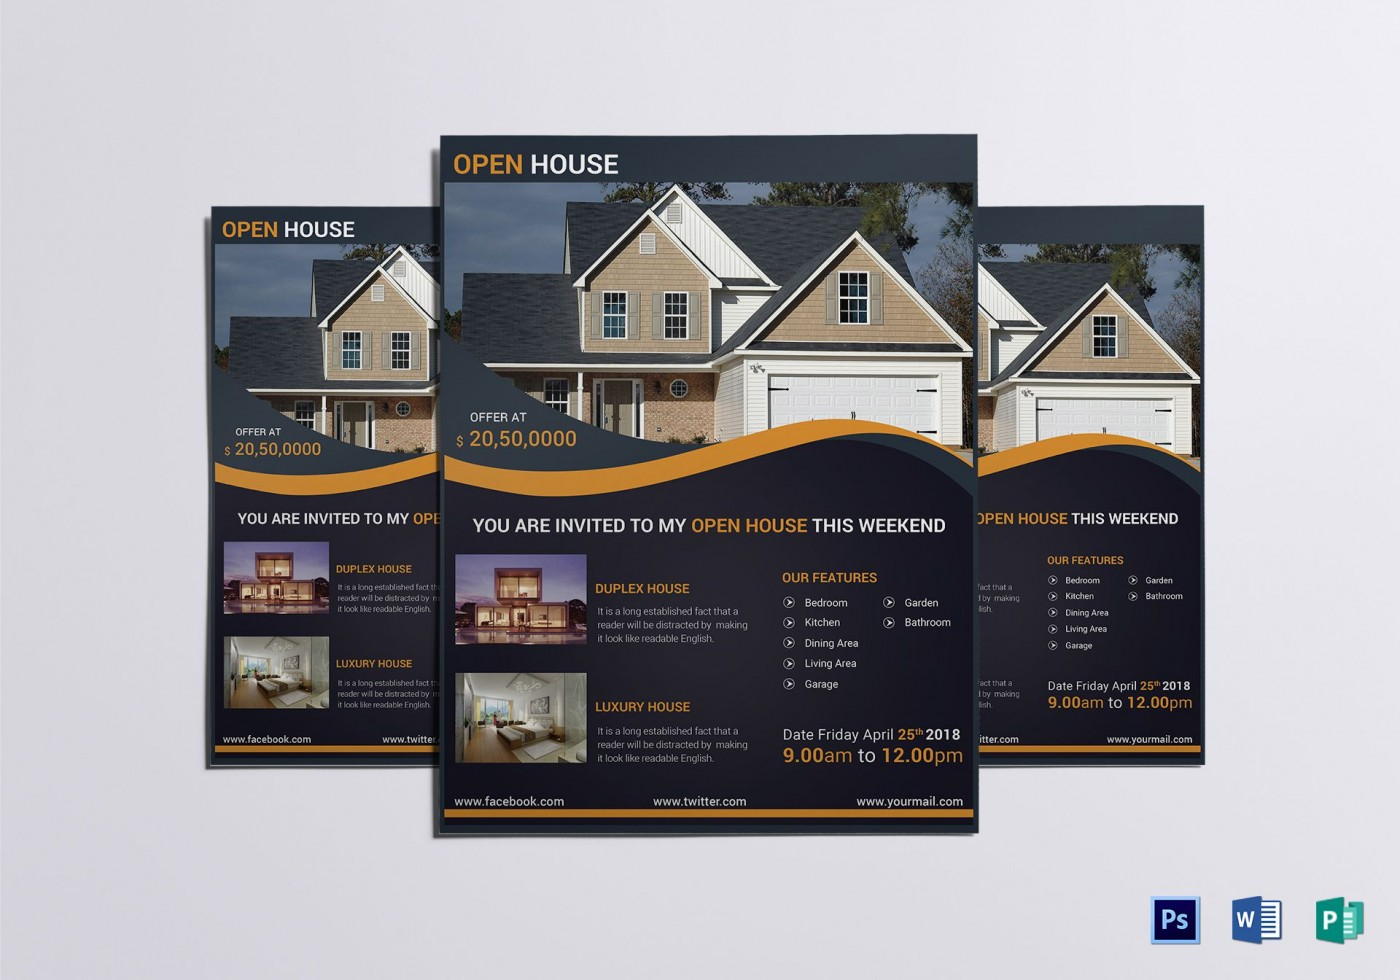 007 Simple Open House Flyer Template High Def  Word Free School Microsoft1400